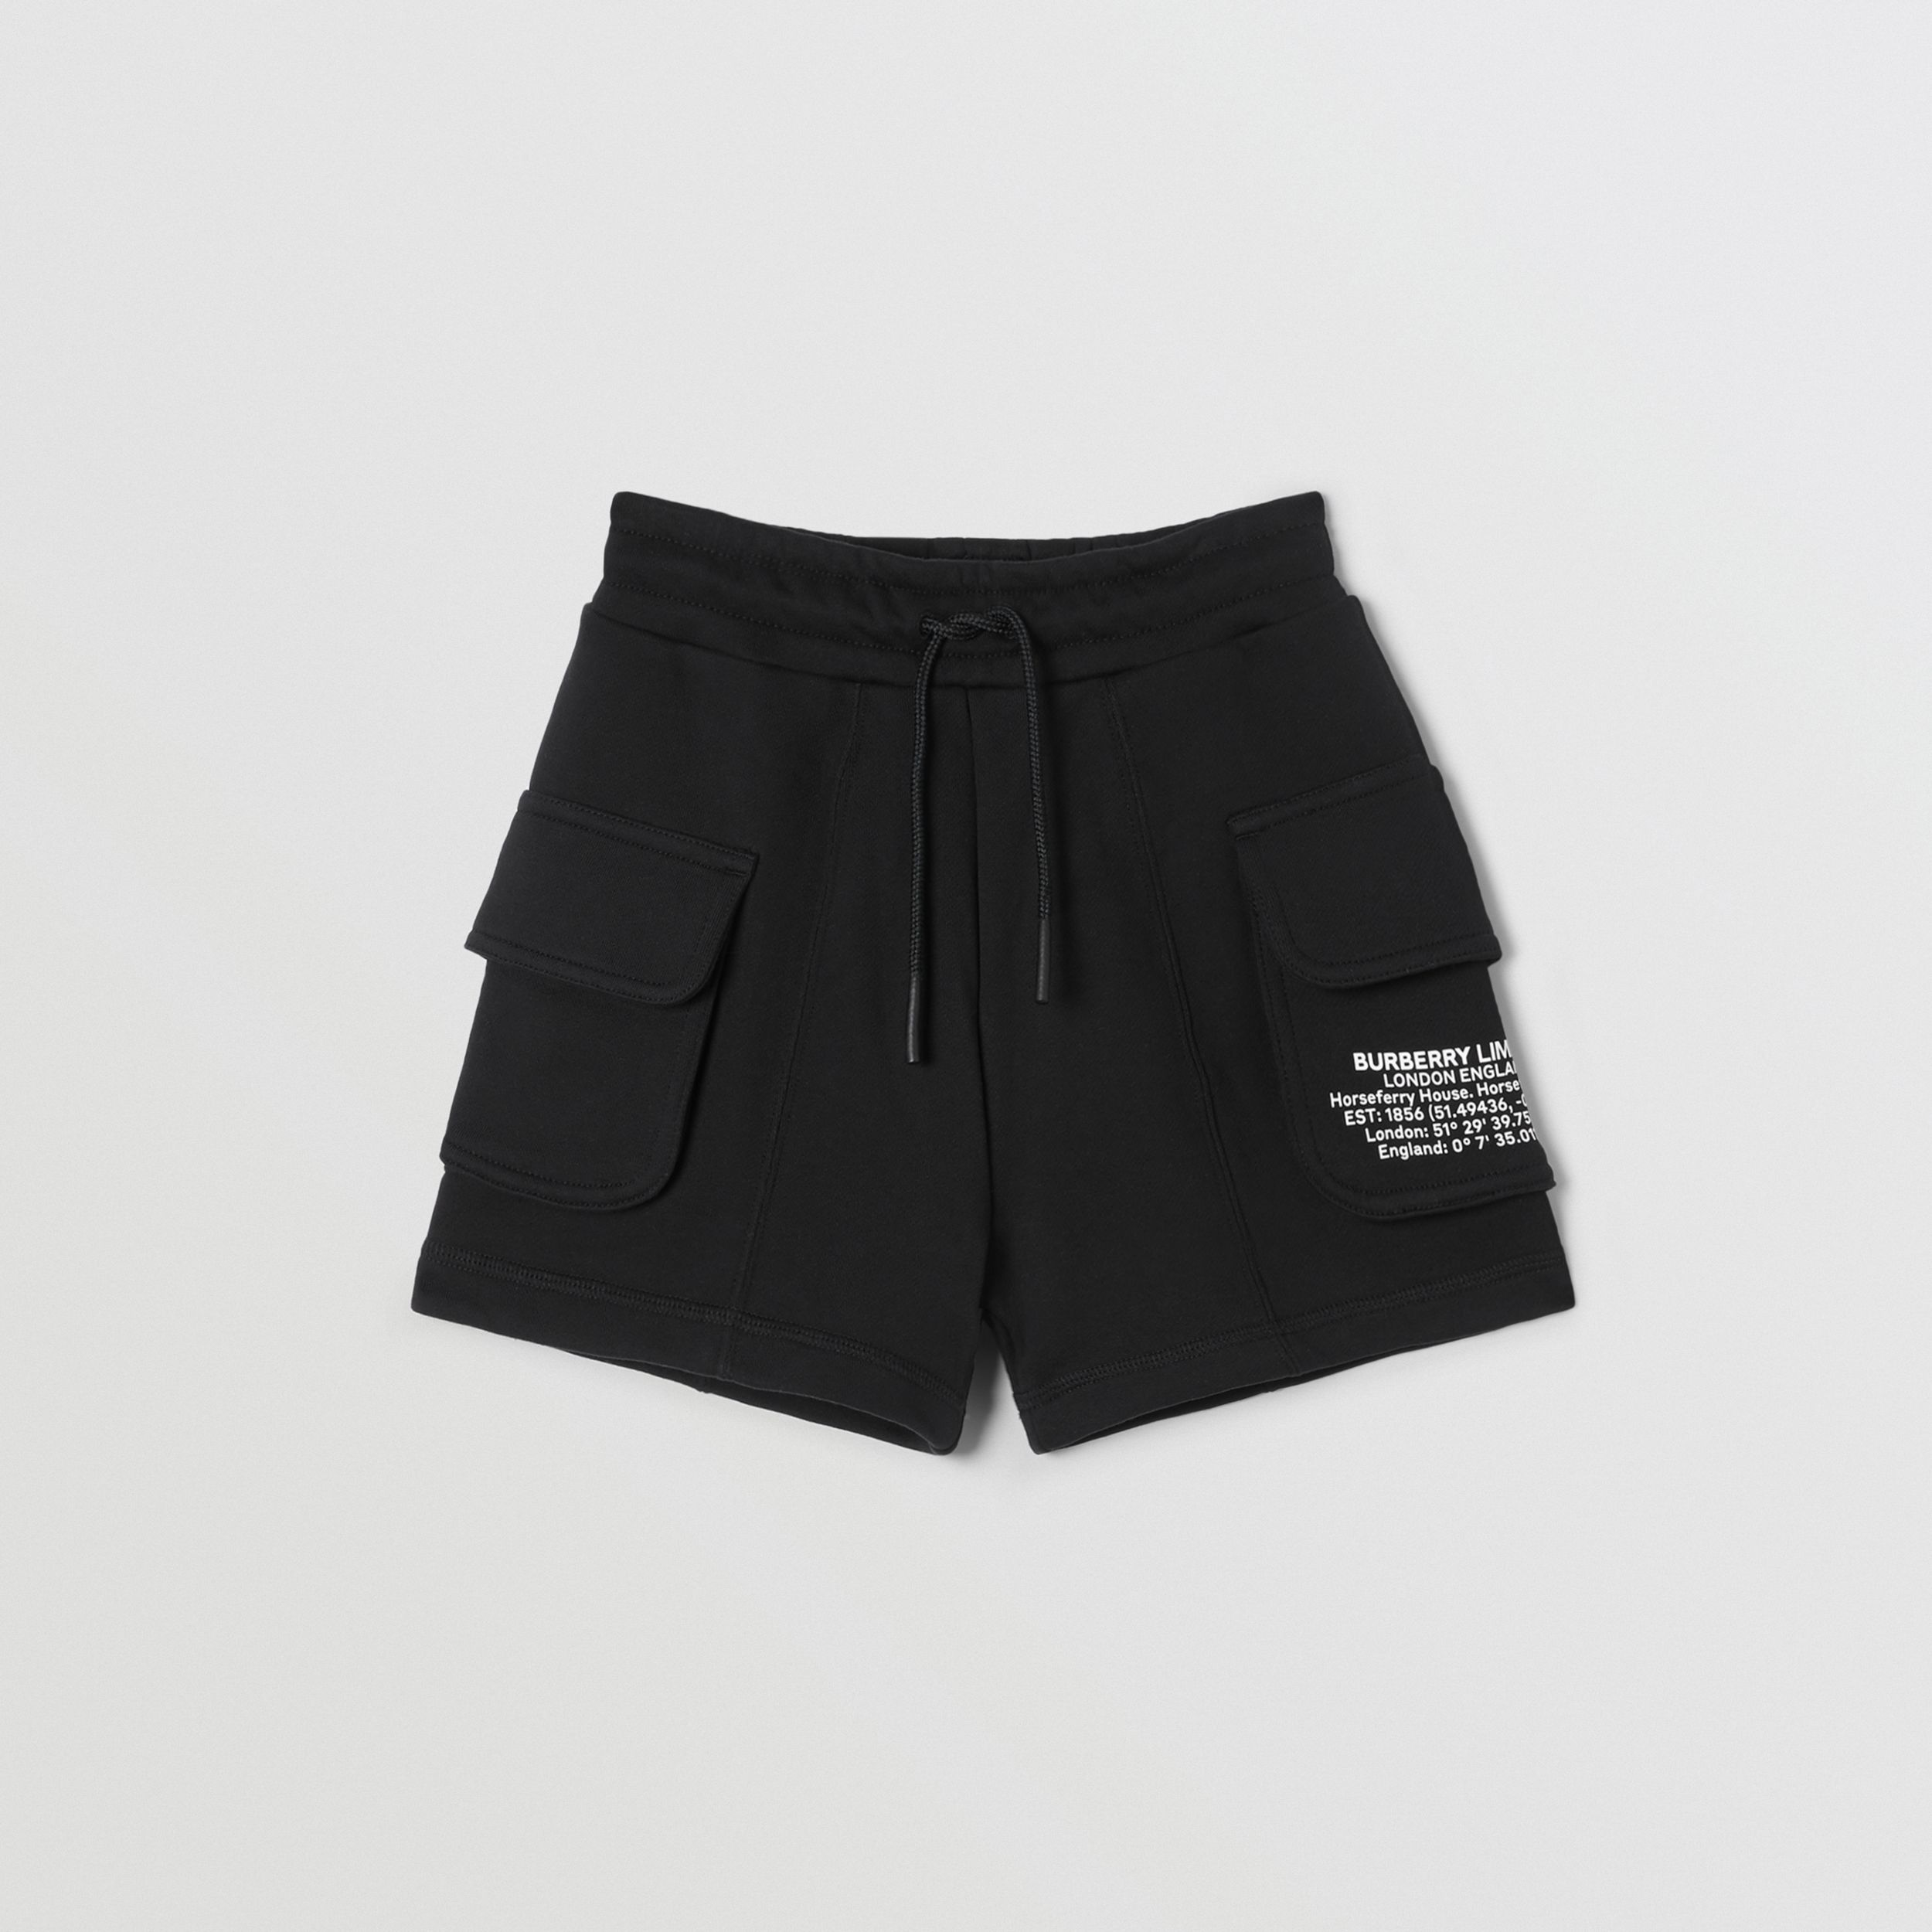 Location Print Cotton Drawcord Shorts in Black | Burberry Australia - 1